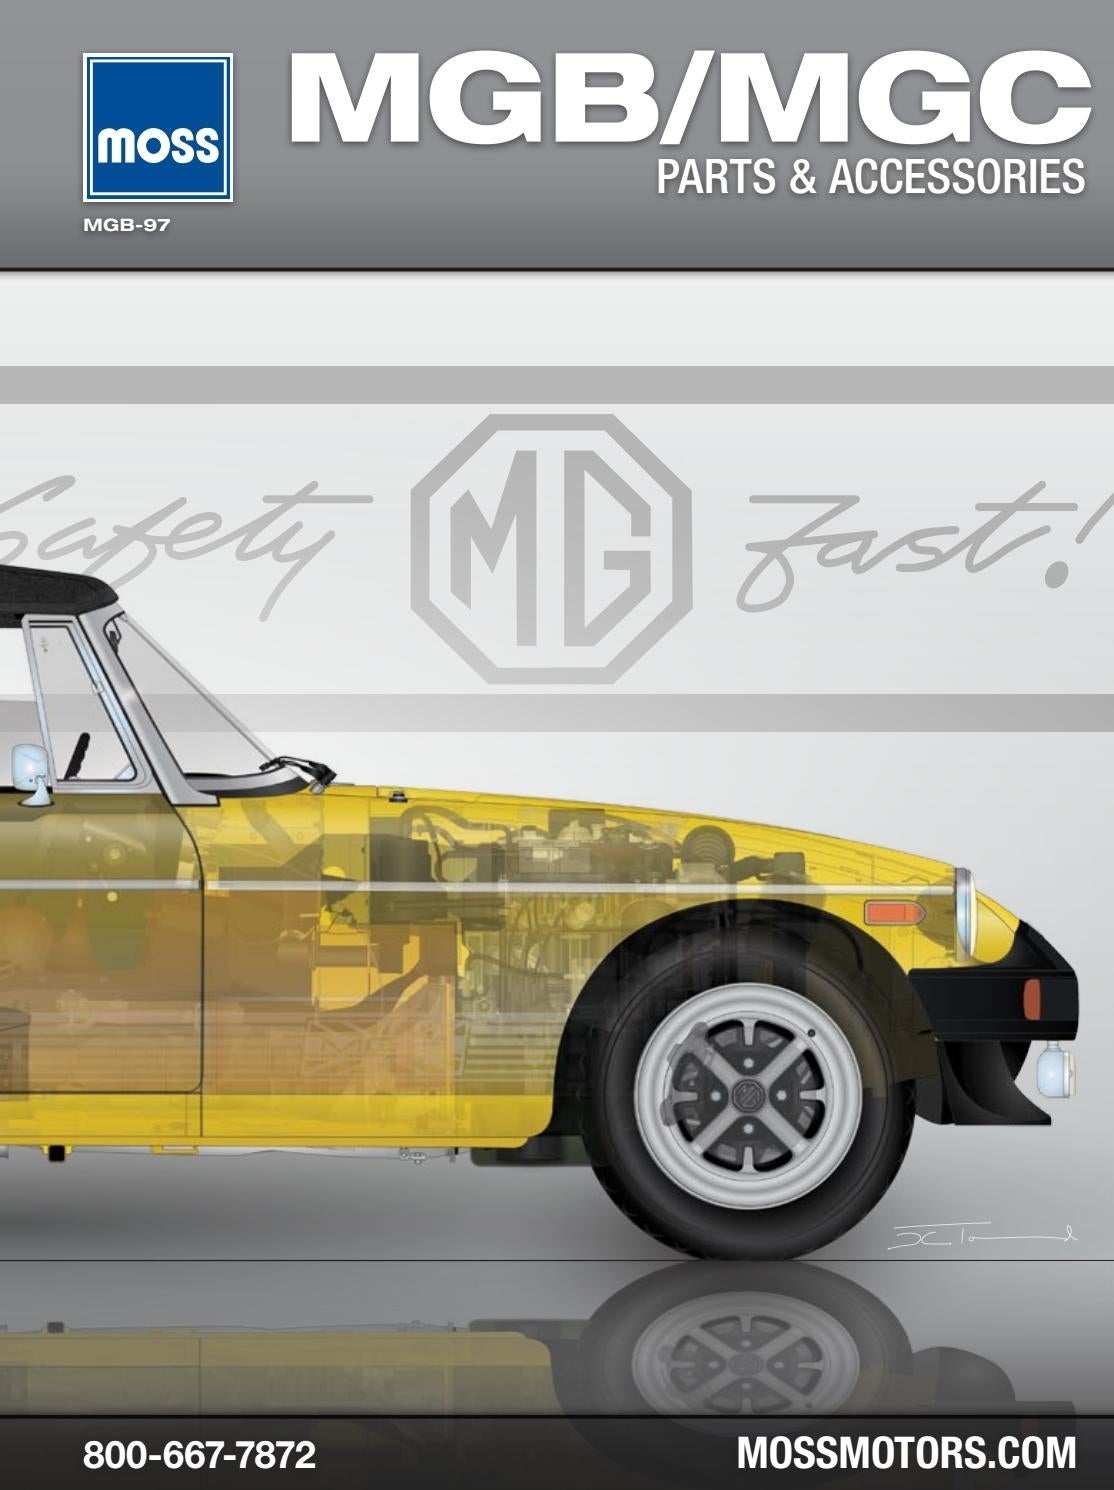 Moss Motors Mga Wiring Diagram Books Of On 1600 Forum Mg Experience Forums The Harnesses For Engine Swaps Rat Rod